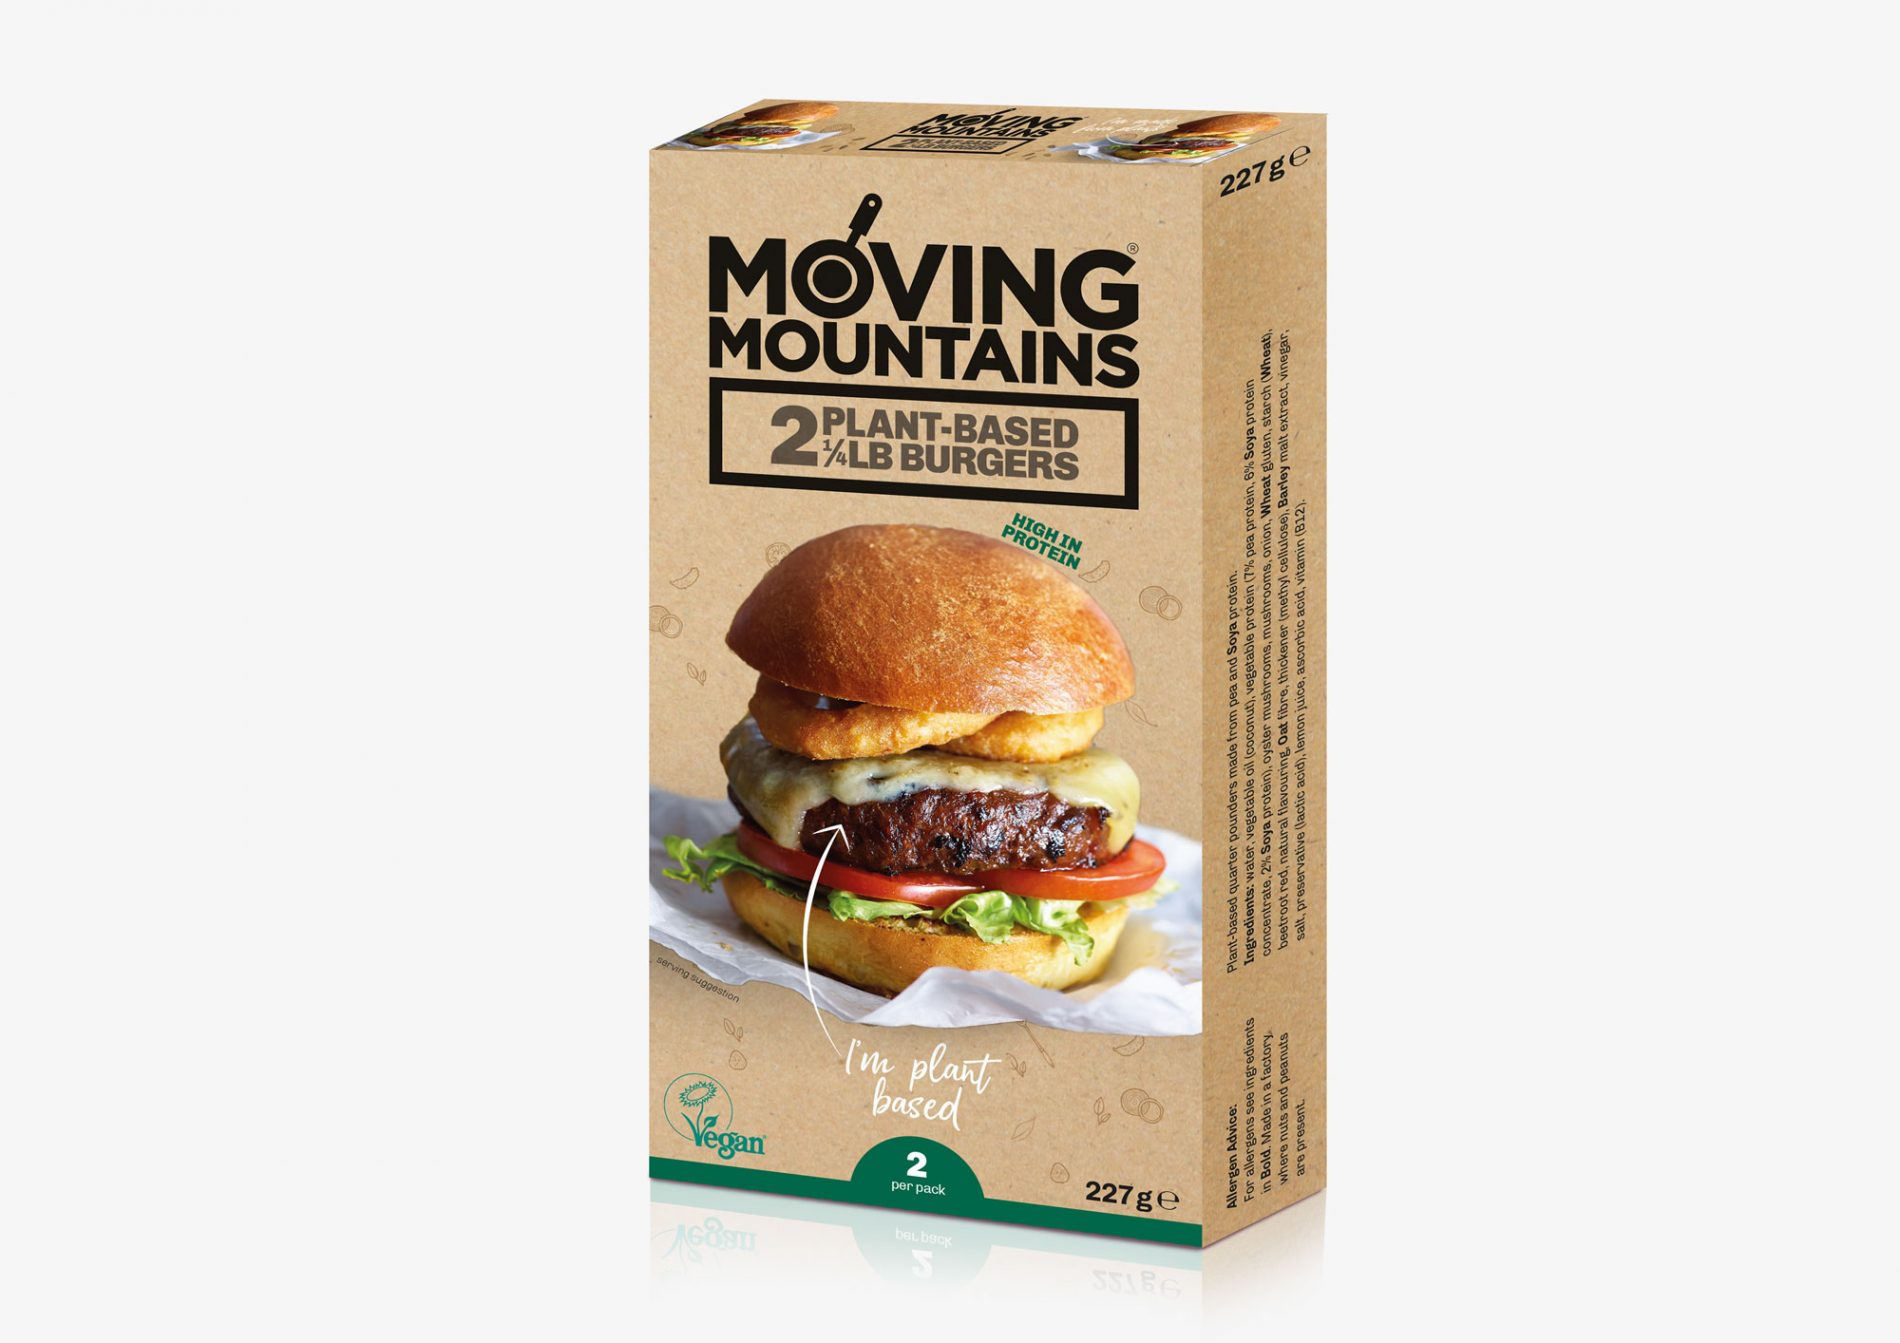 Moving Mountains Launching Into 300 Waitrose Stores Nationwide